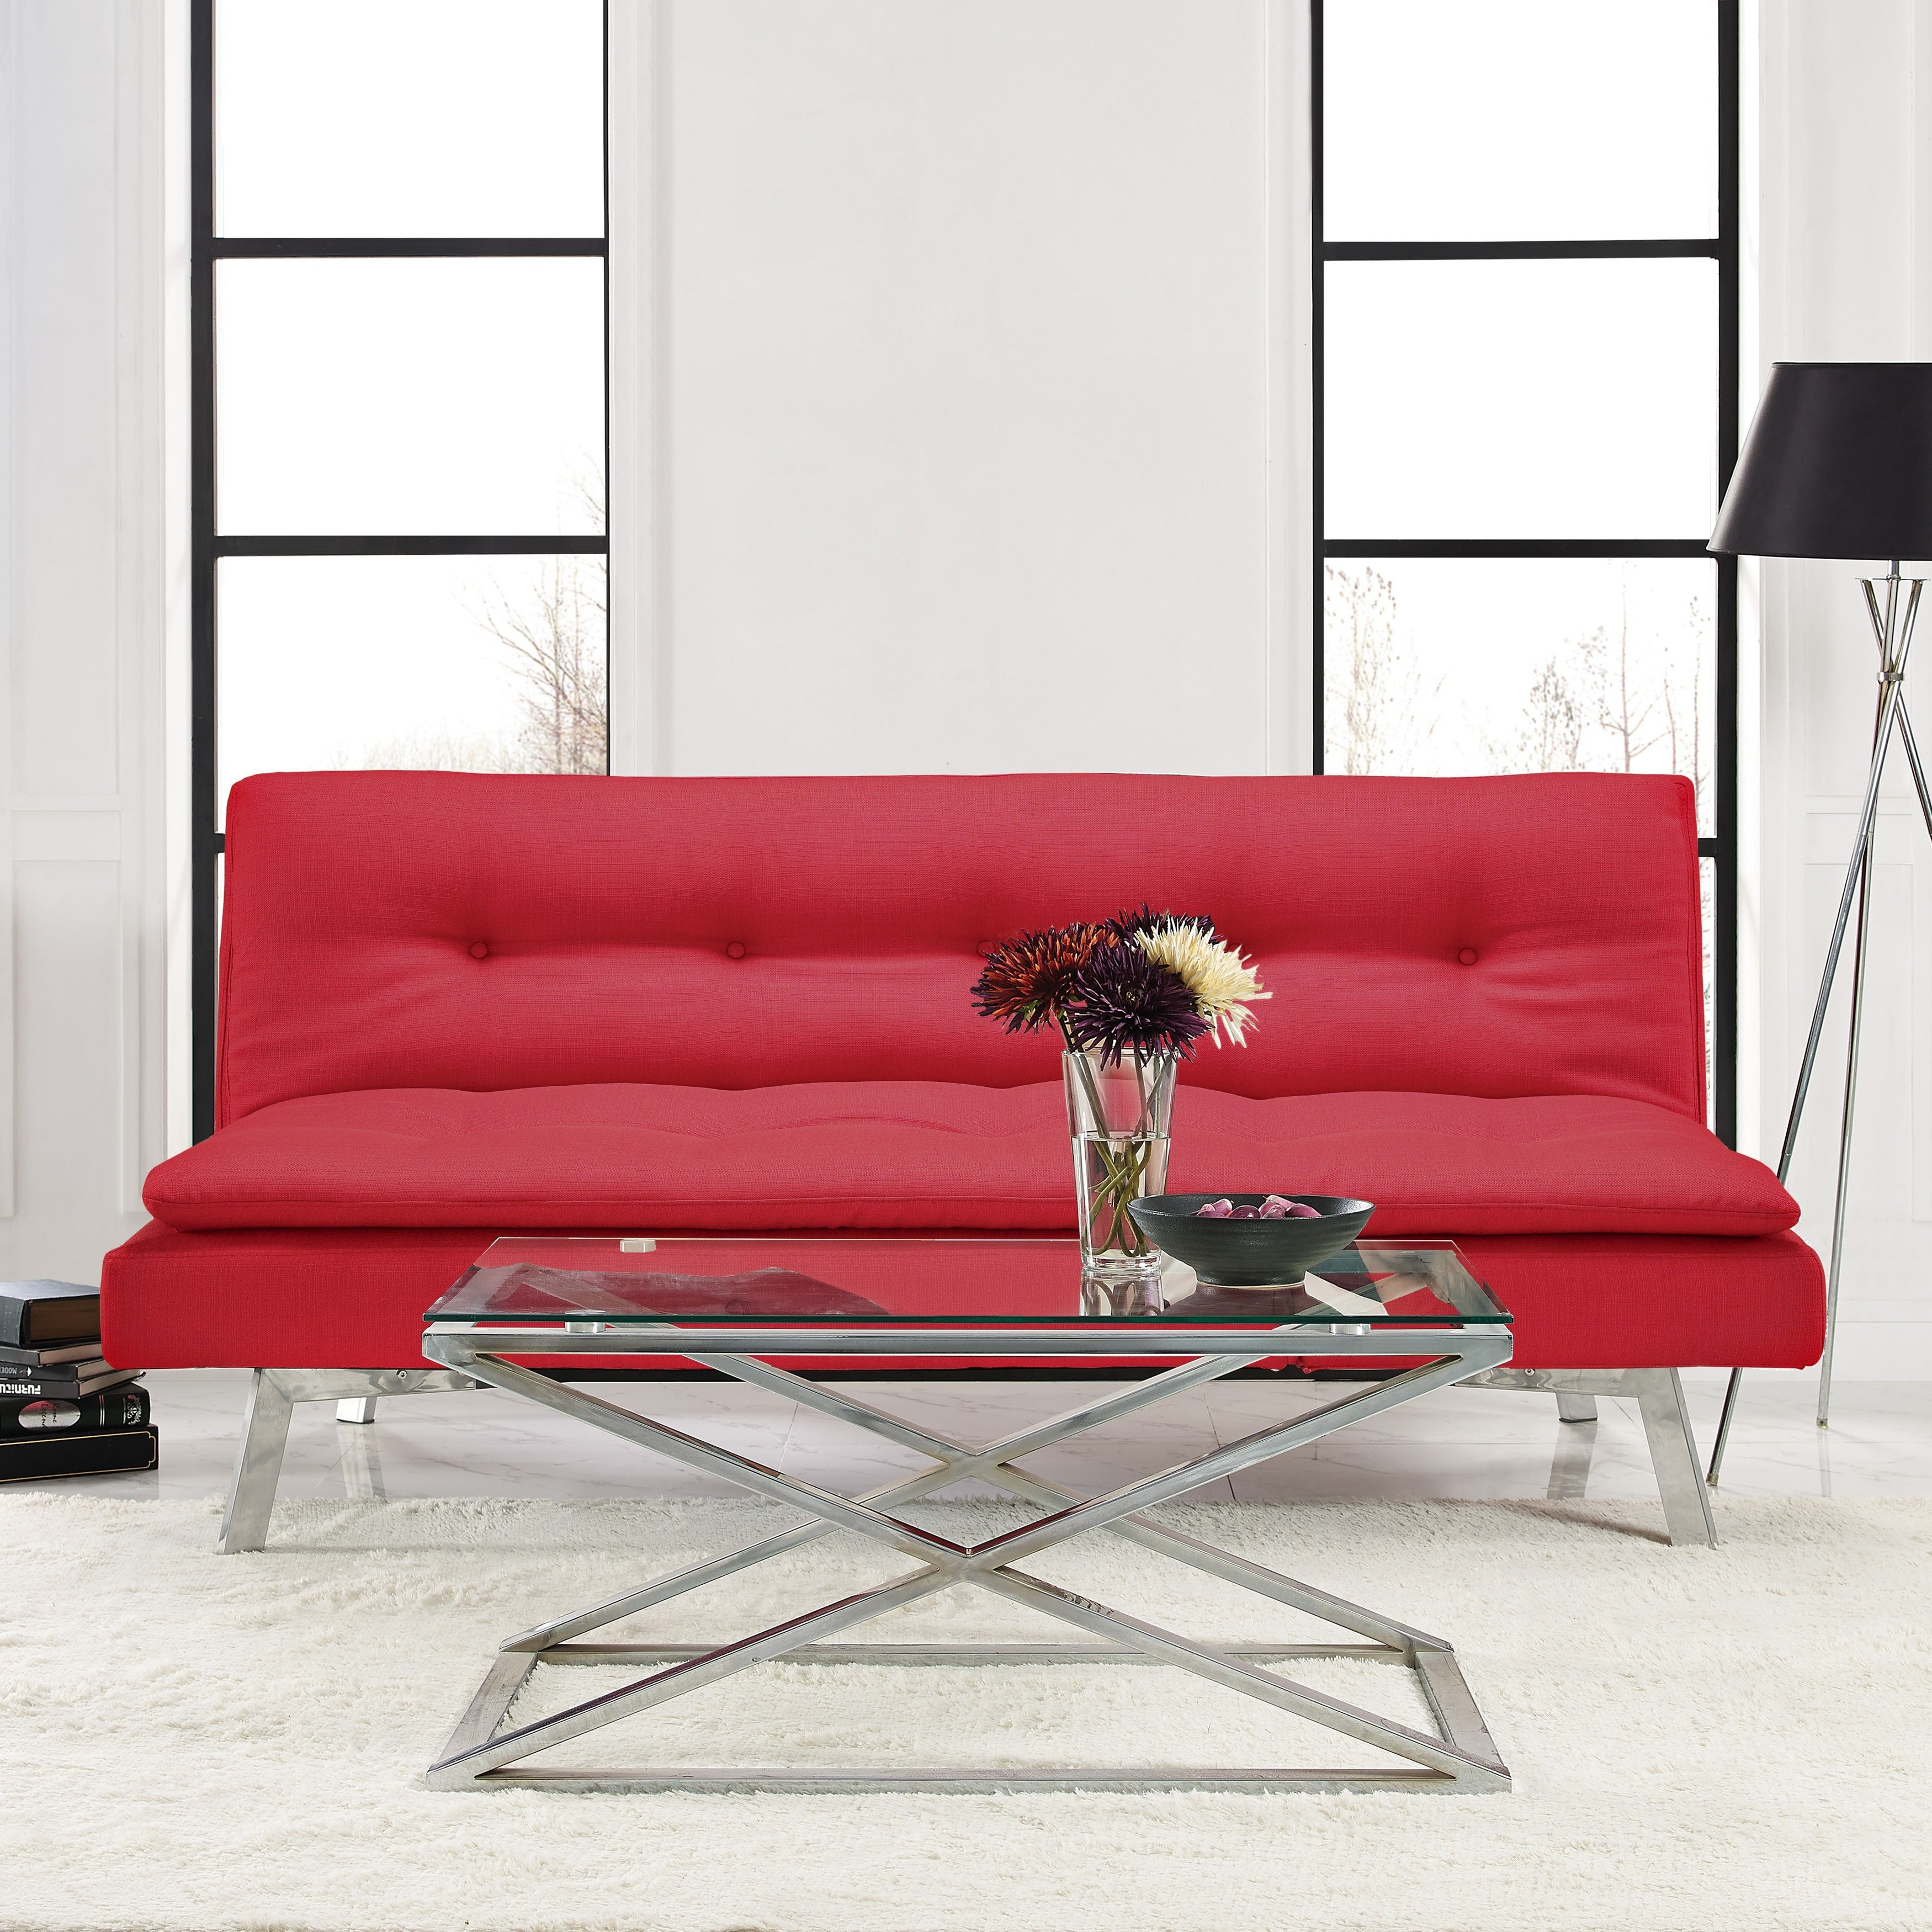 Serta Salinas Fabric/Foam Convertible Sofa with Stainless...